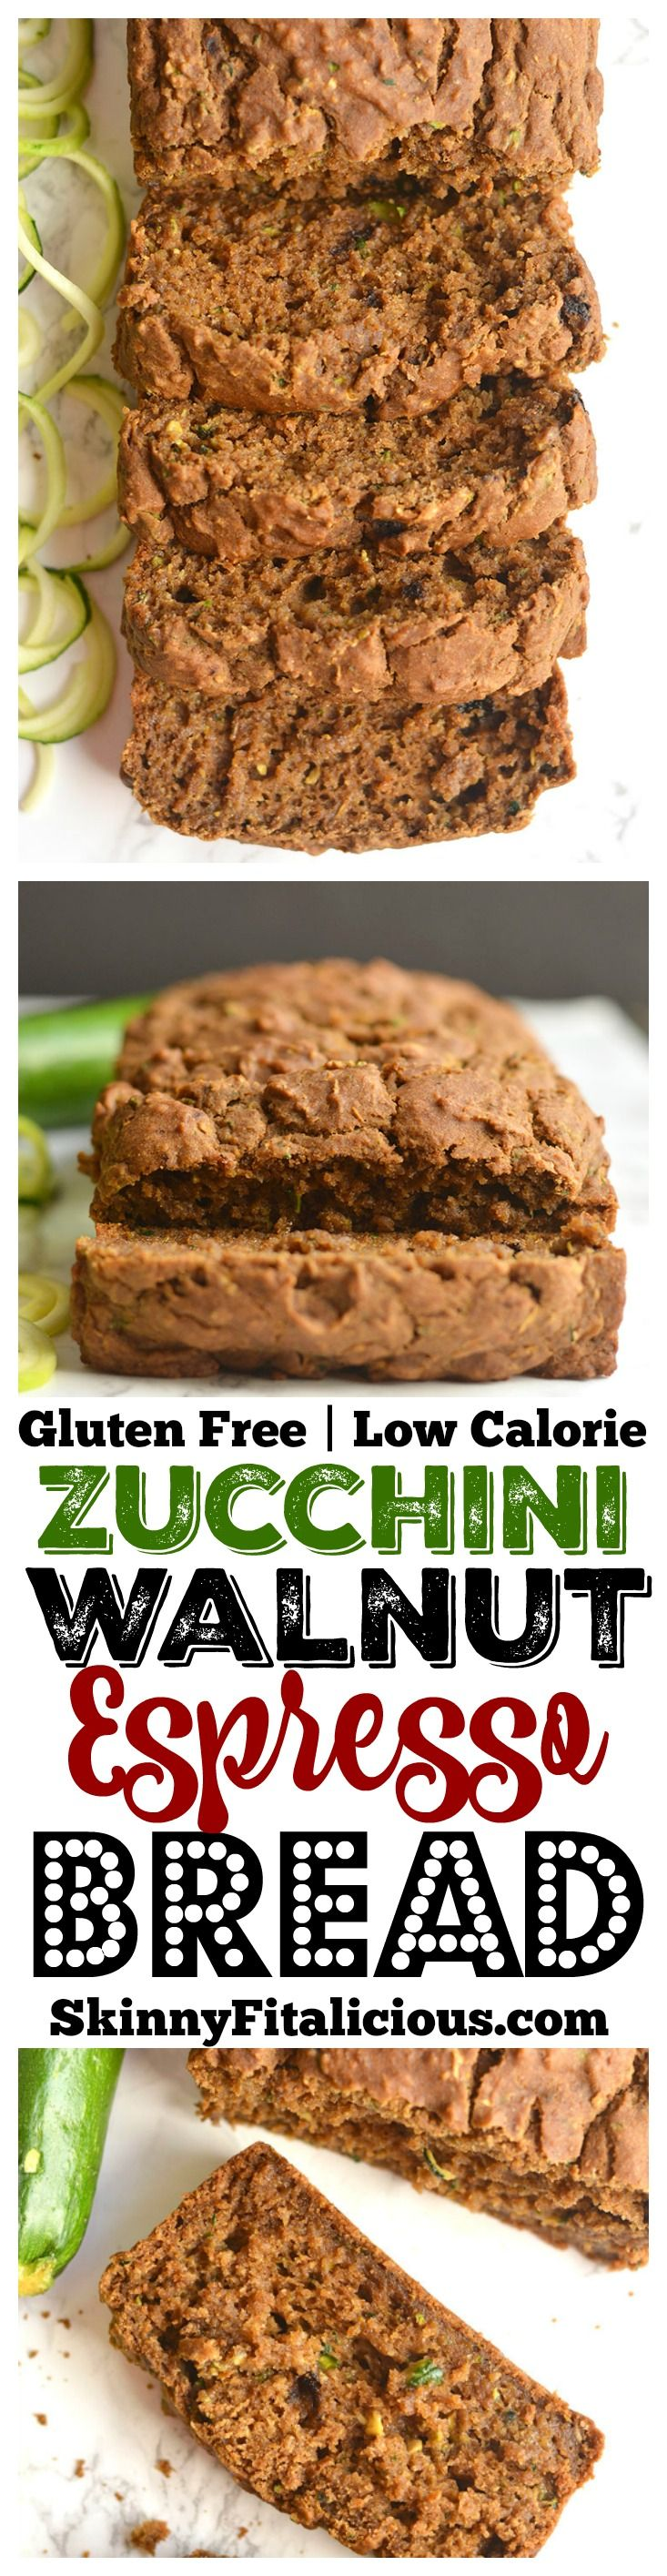 Traditional Zucchini Walnut Espresso Bread made healthy & spiked with espresso for a velvety texture you can't resist. Perfect for breakfast or an anytime snack. Gluten Free + Low Calorie